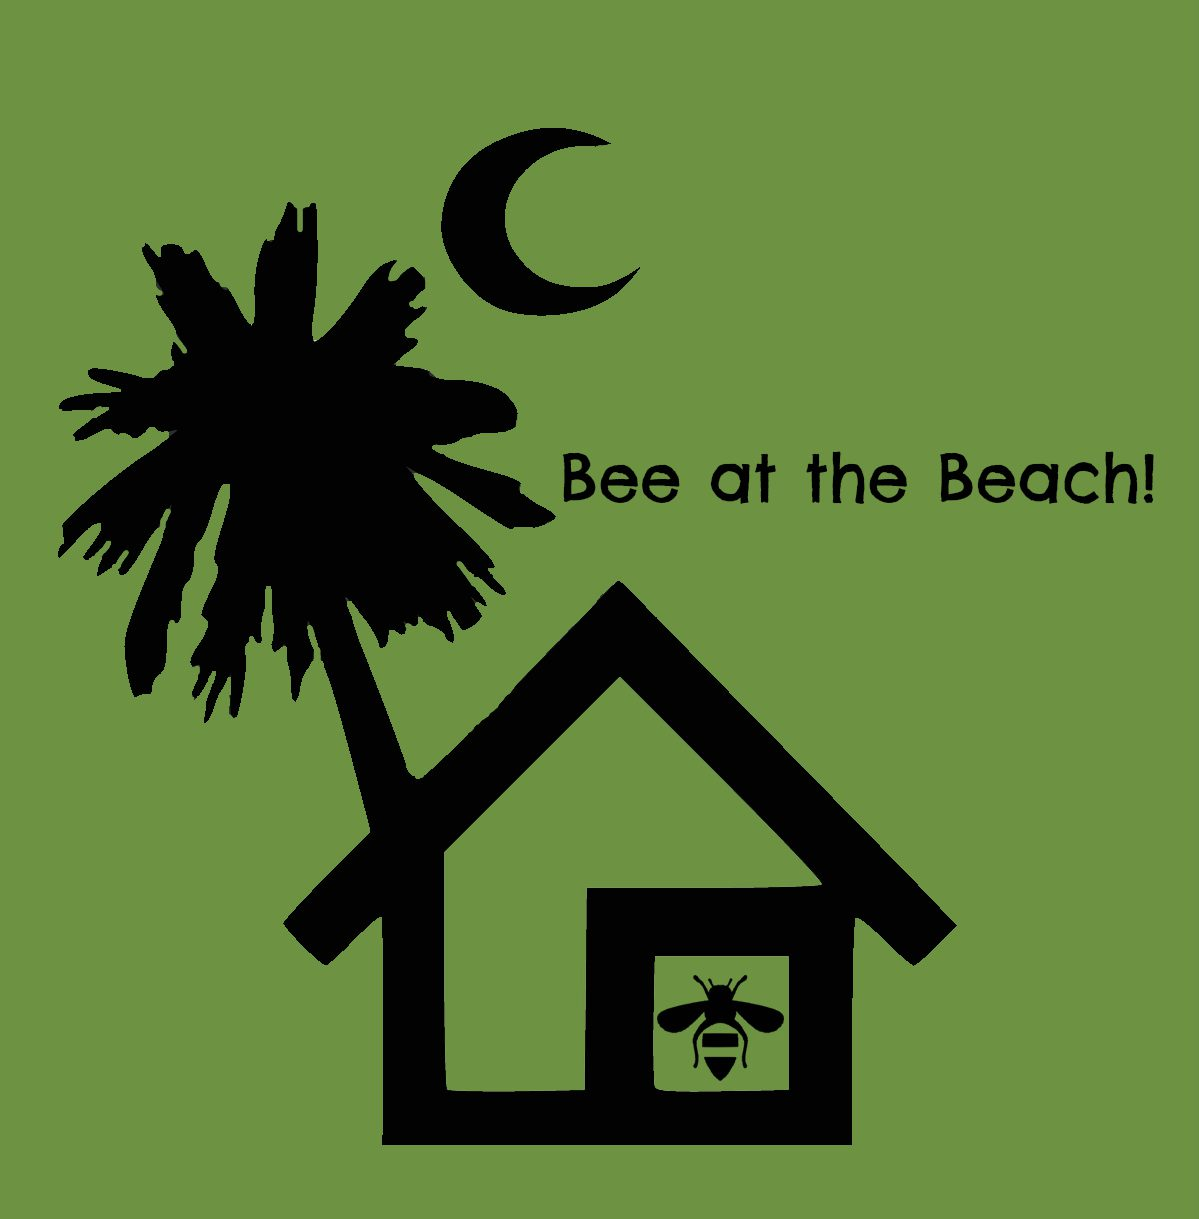 cropped-bee_at_the_beach1.jpg